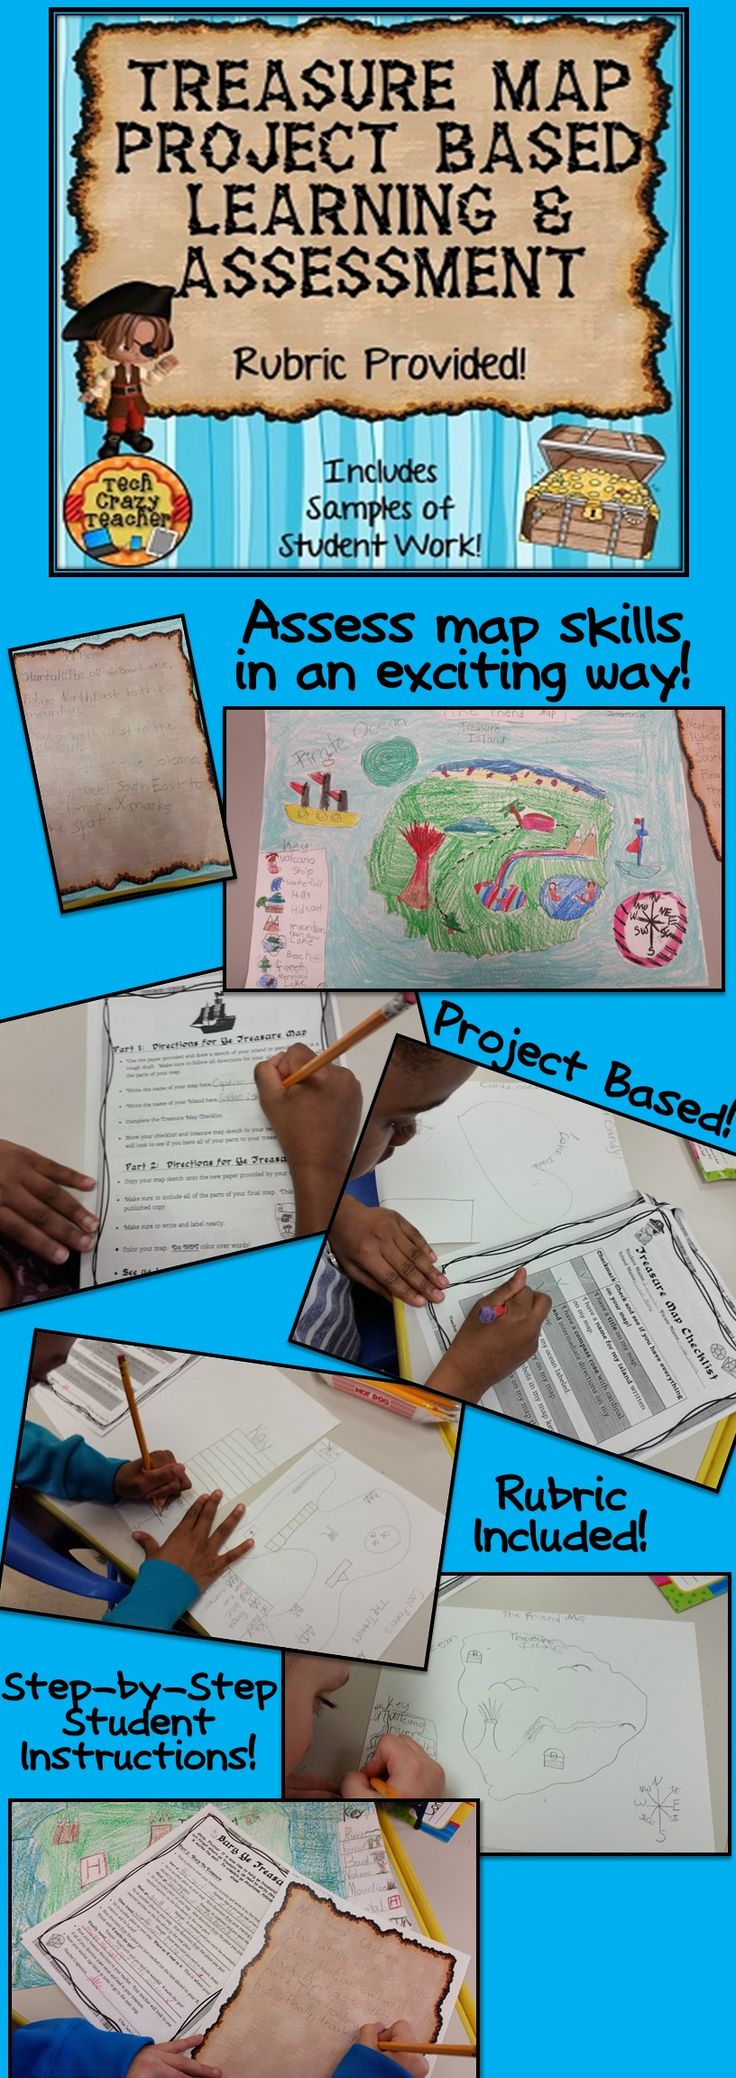 What could be more fun than creating your own island to hide your pirate treasure? Have your students design their own Treasure Map and Island! This project based map skills activity is designed to capture the interests of students while assessing their map skills. Rubric and student examples included!  $